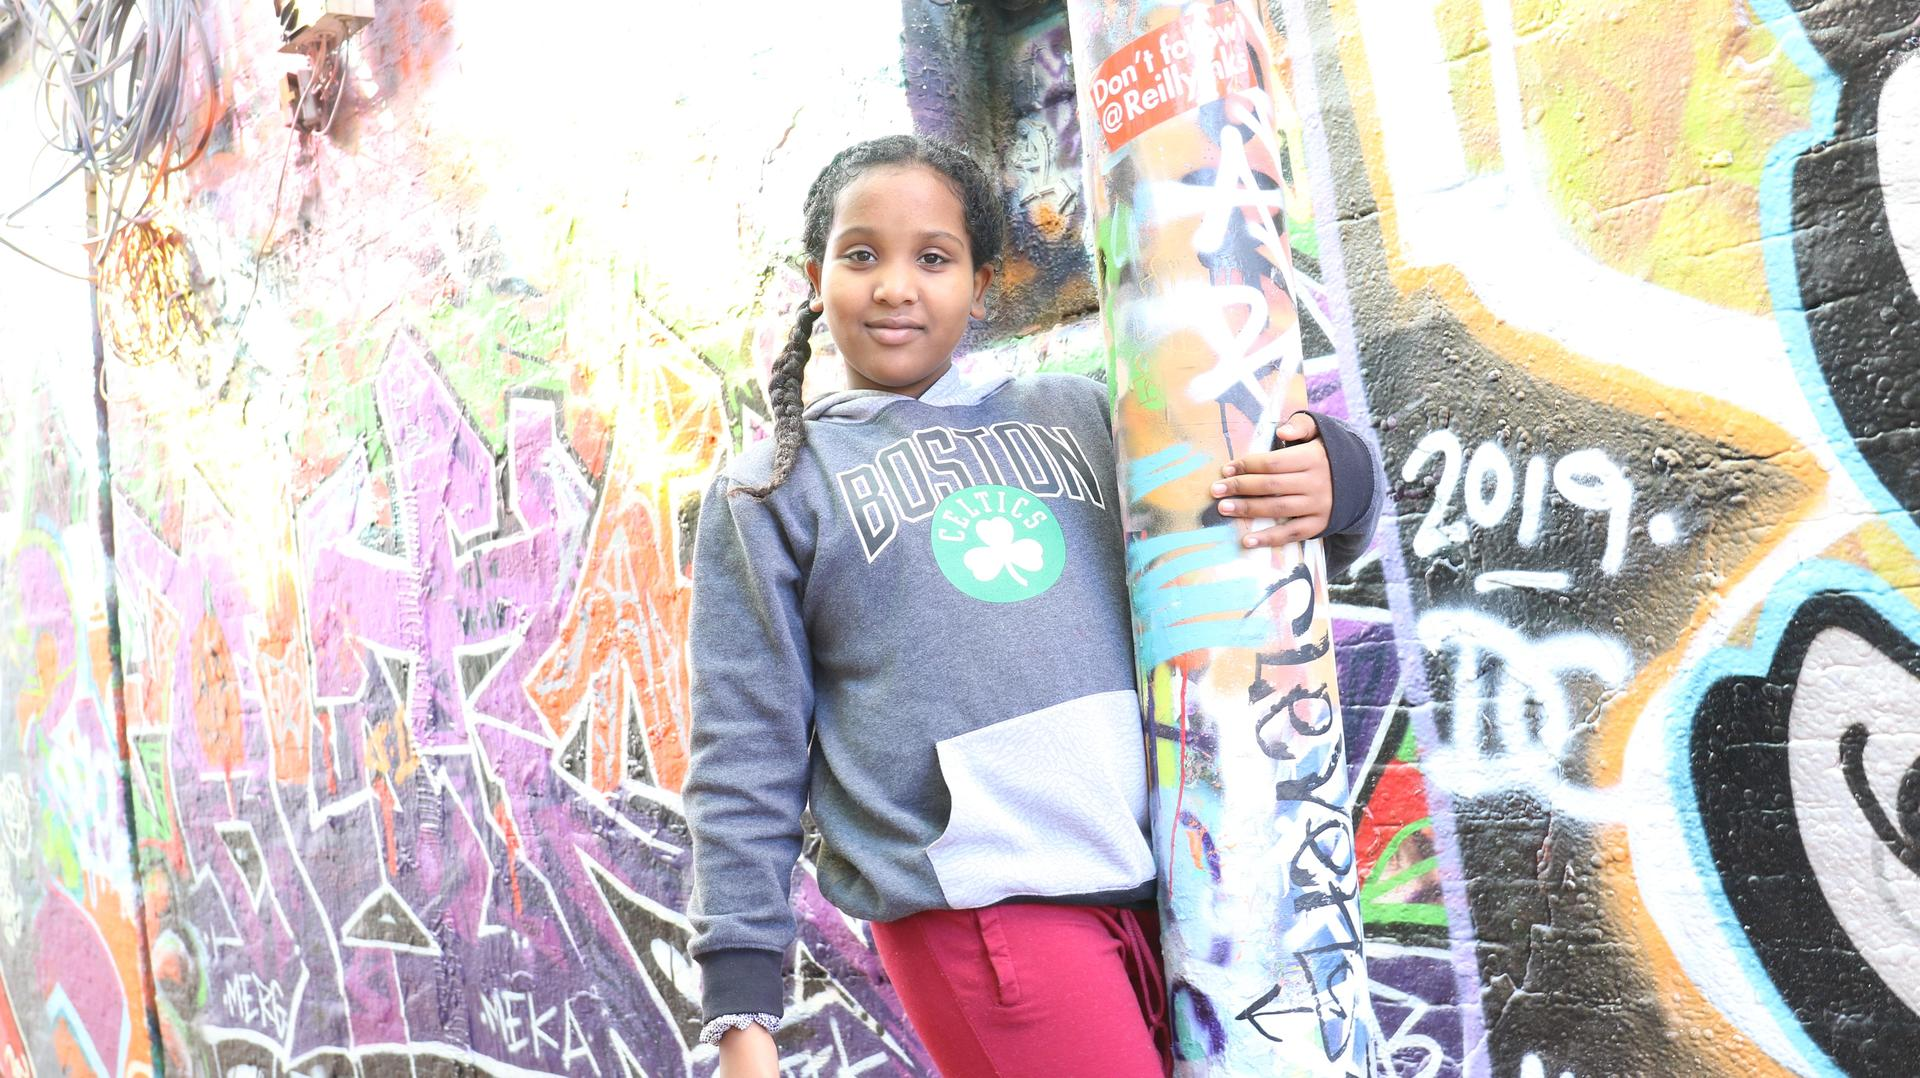 Student posing with graffiti artwork